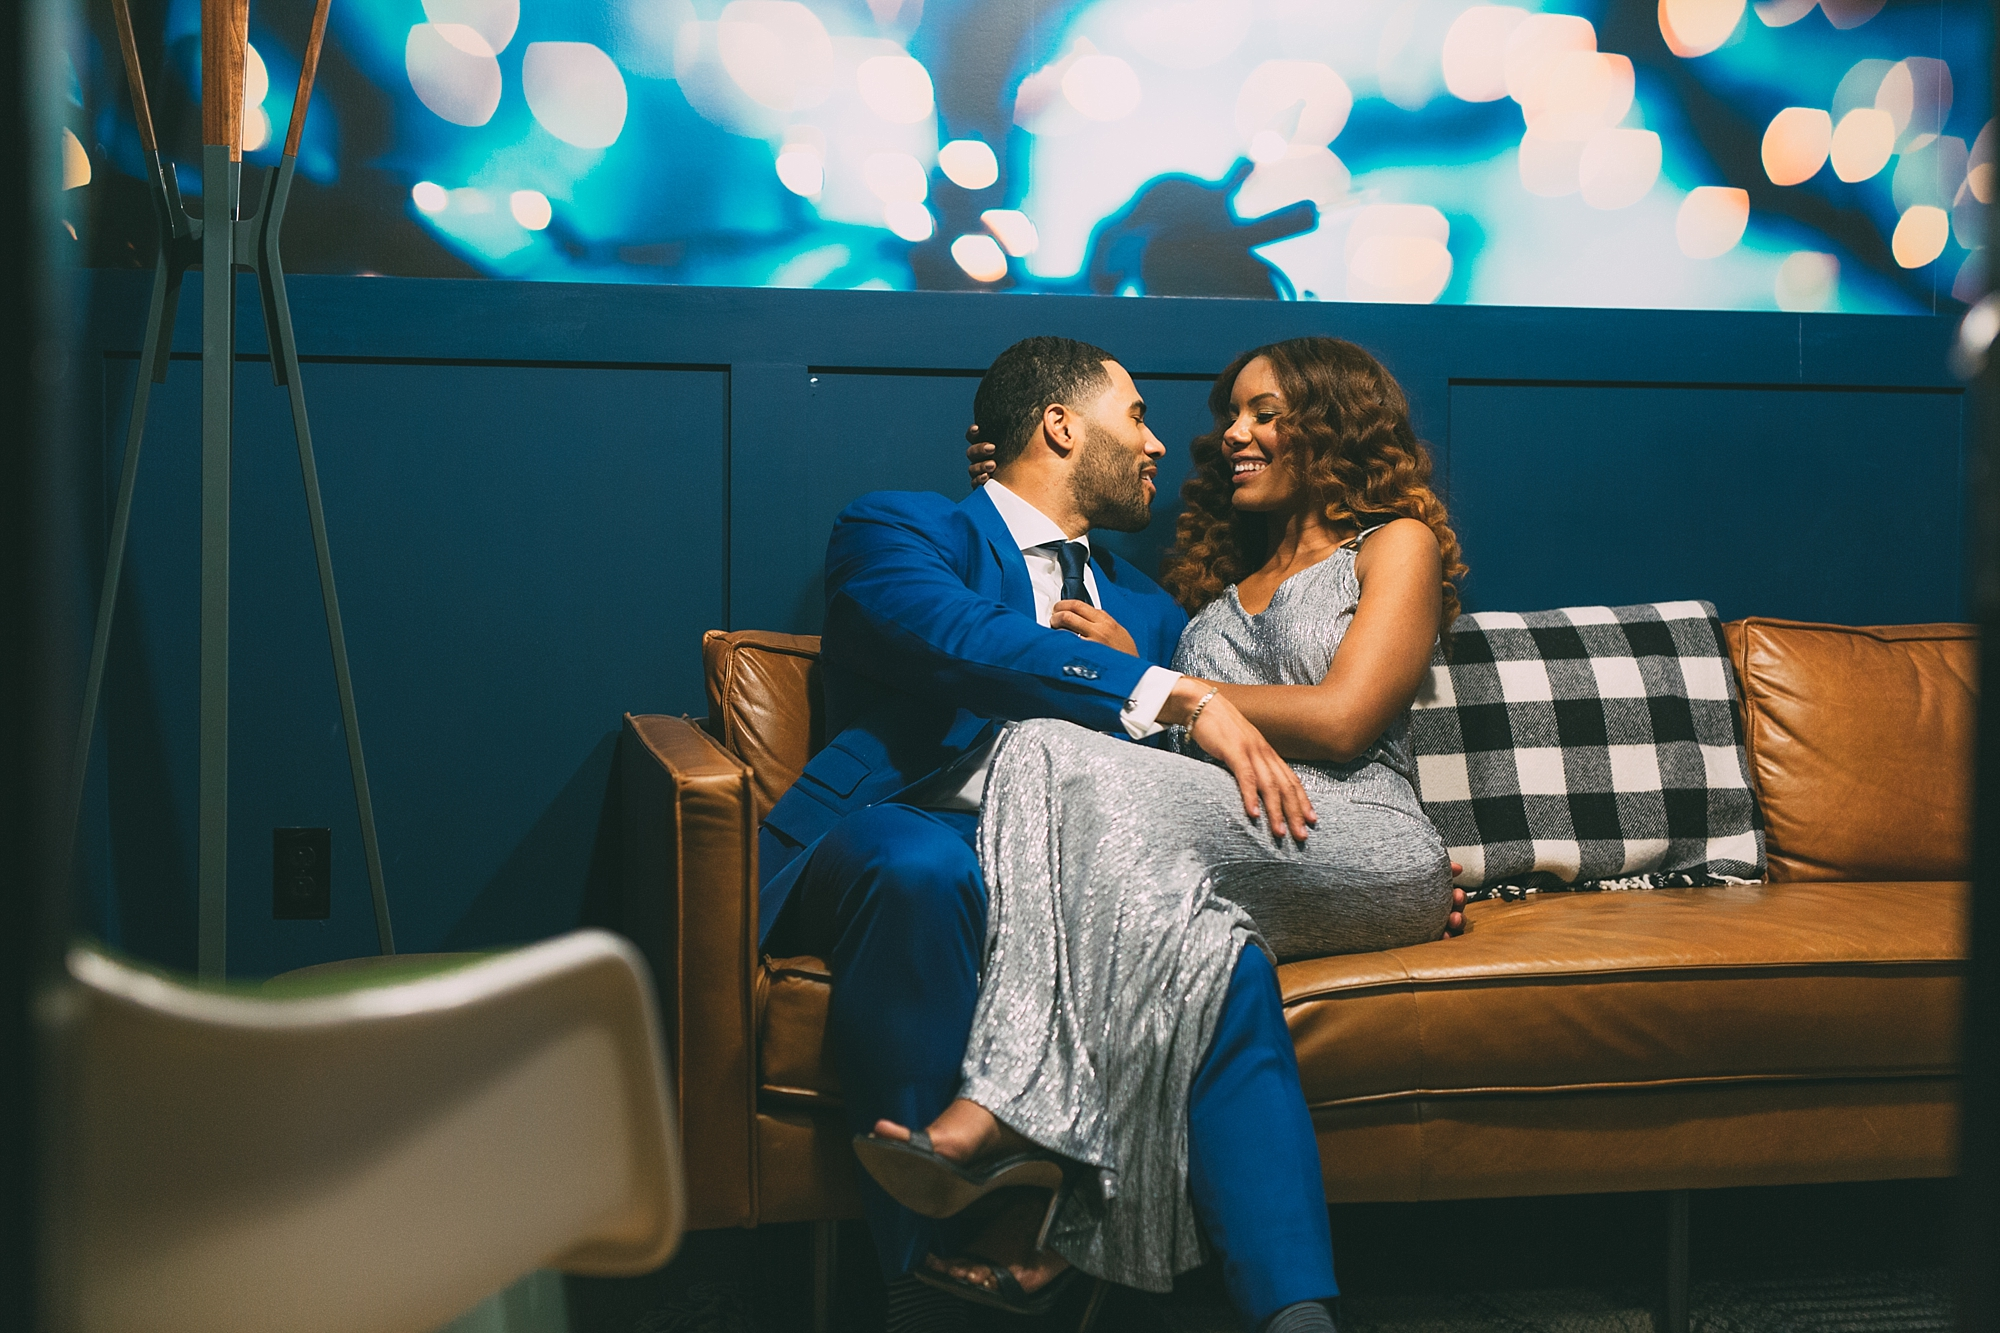 Joe_Mac_Creative_Wedding_Engagements_Photography_Philadelphia_Broad_Street_Proposal_0034.jpg